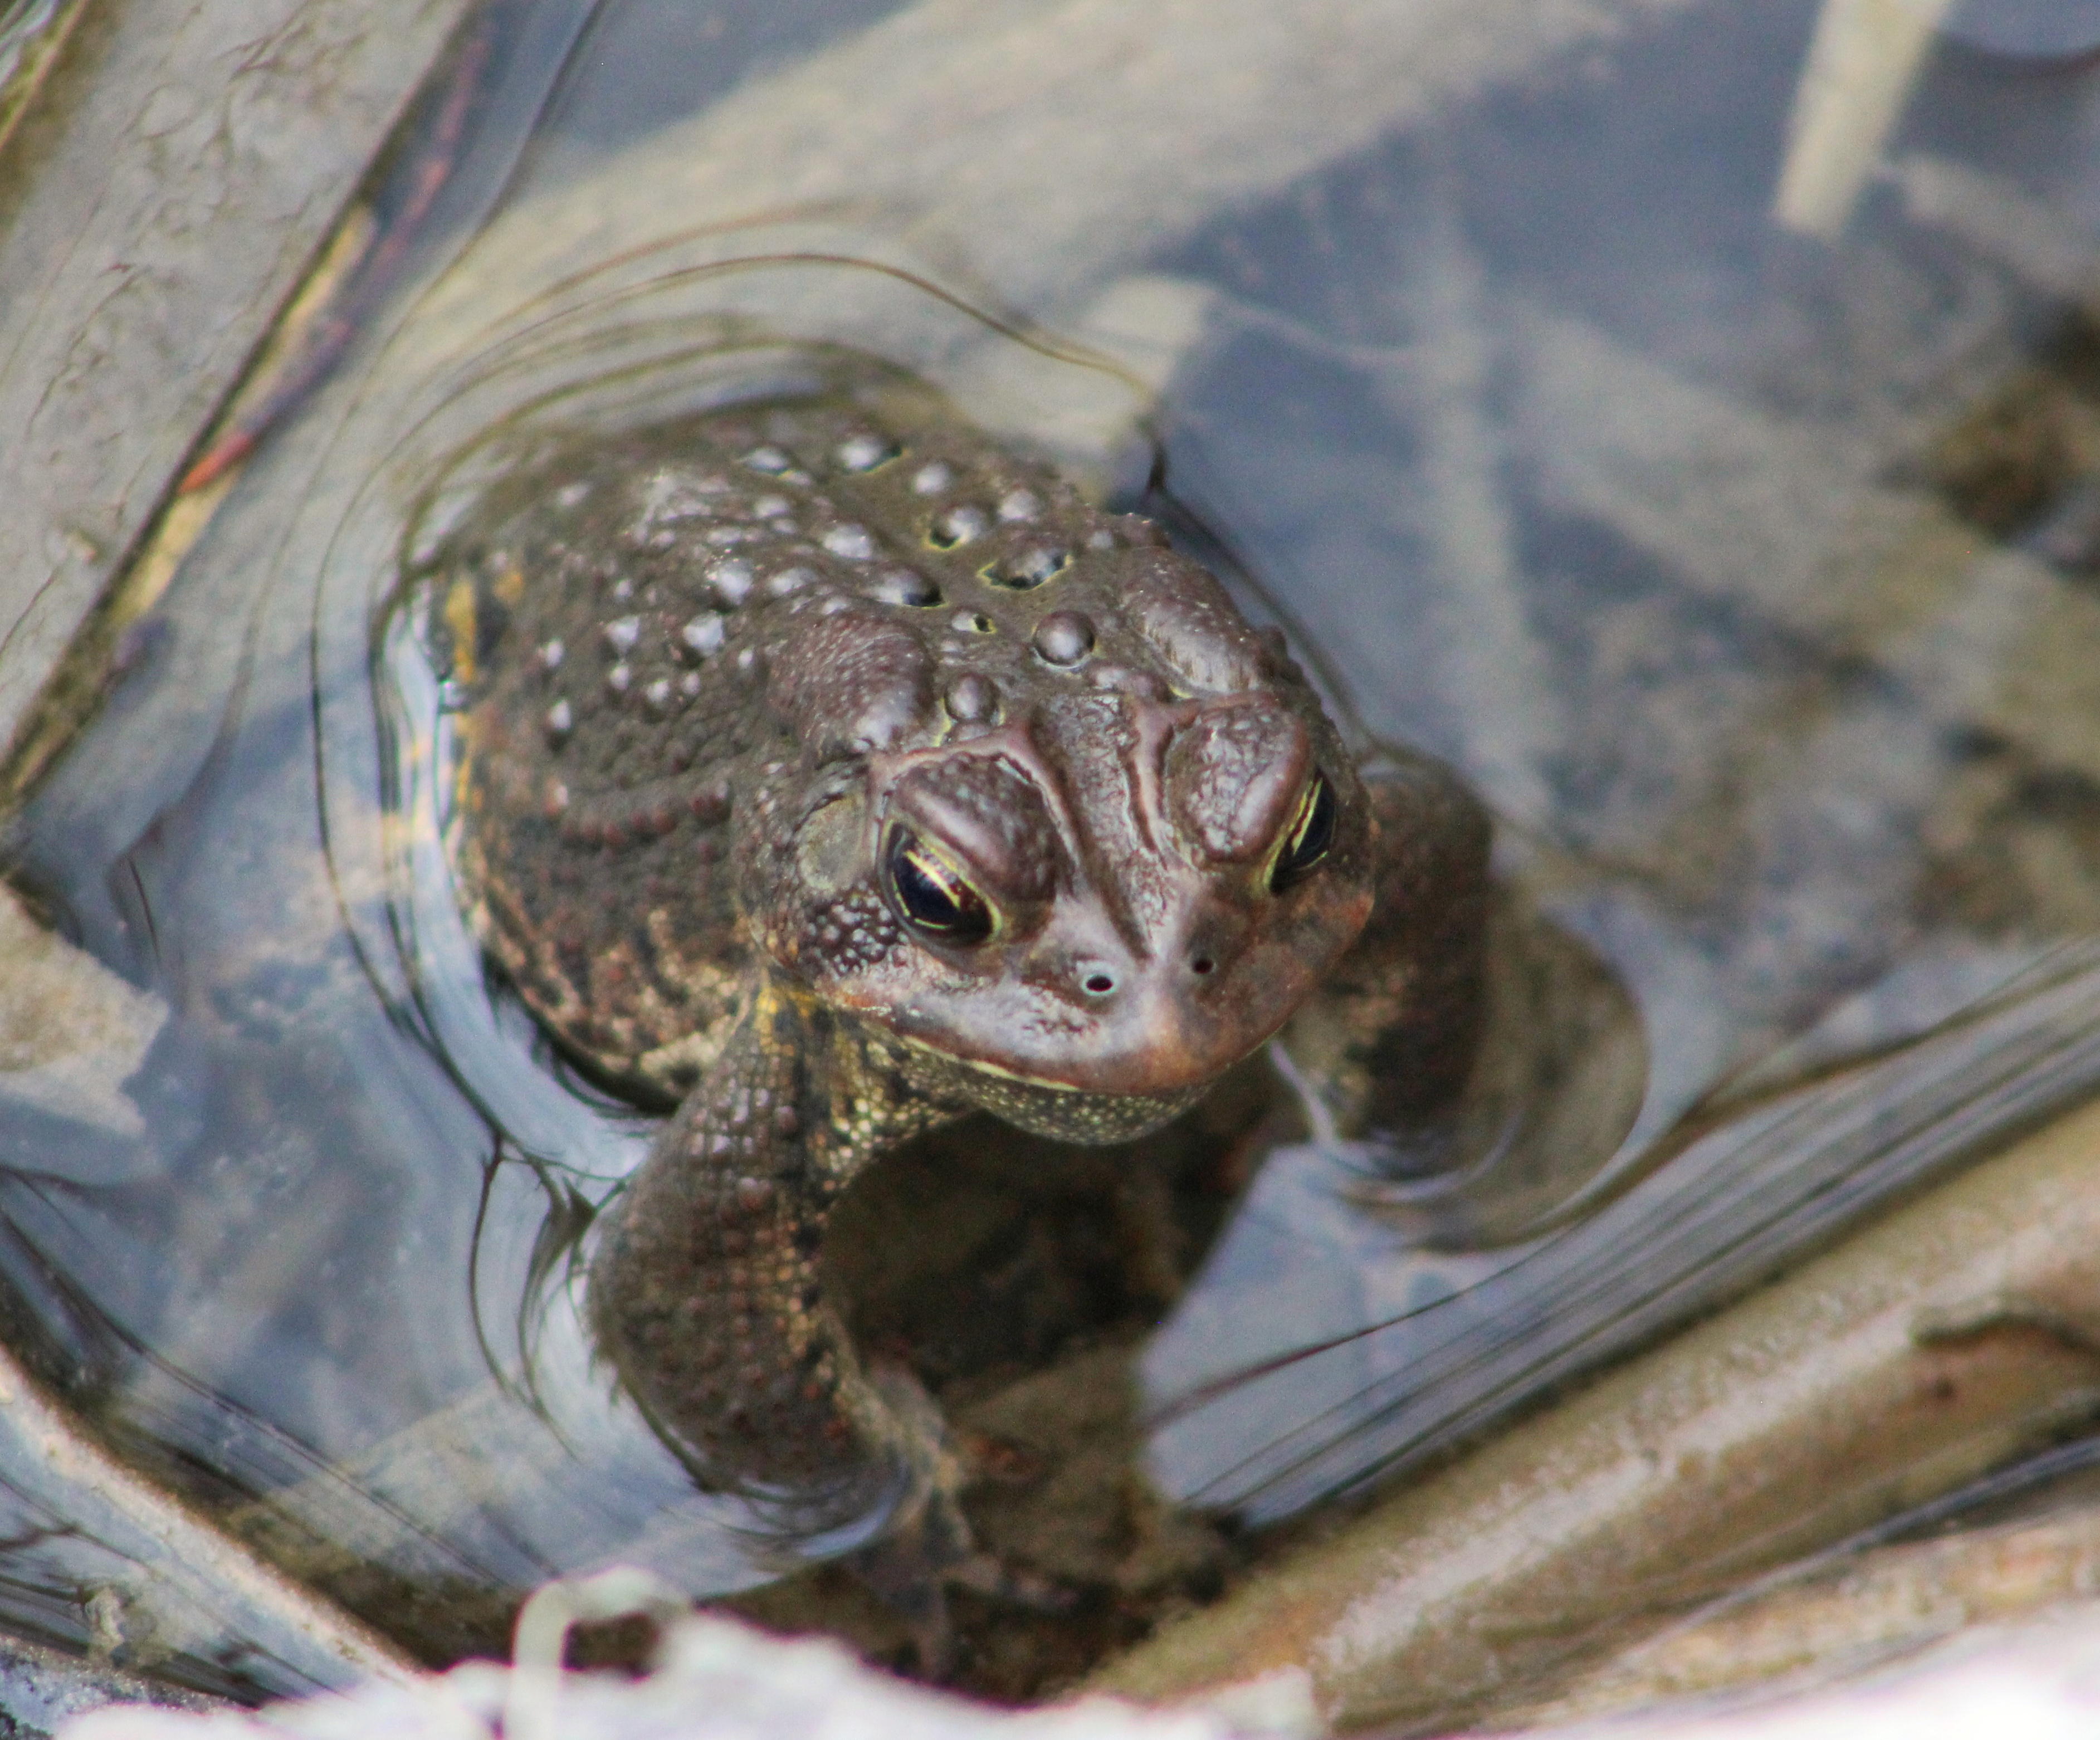 Toad in the hole, Amphibian, Frog, Nature, Ontario, HQ Photo